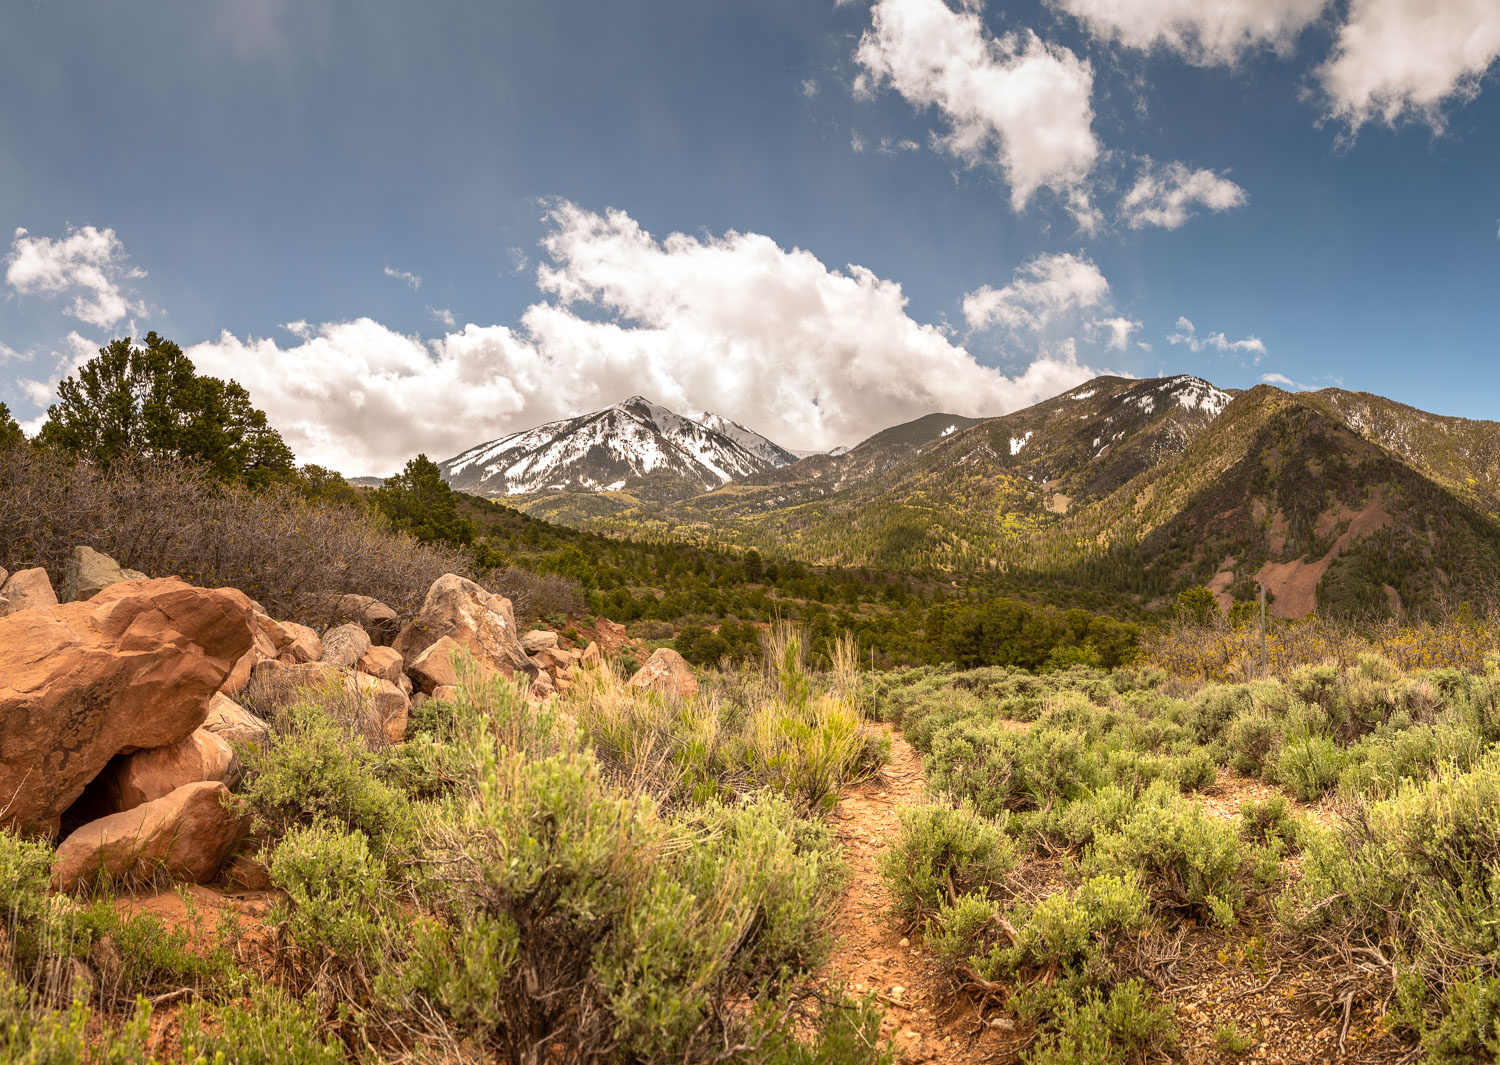 https://i1.wp.com/digital-photography-school.com/wp-content/uploads/2019/06/HDR-Pano-merge-lightroom-digital-photography-school-adam-welch-1.jpg?resize=1500%2C1065&ssl=1